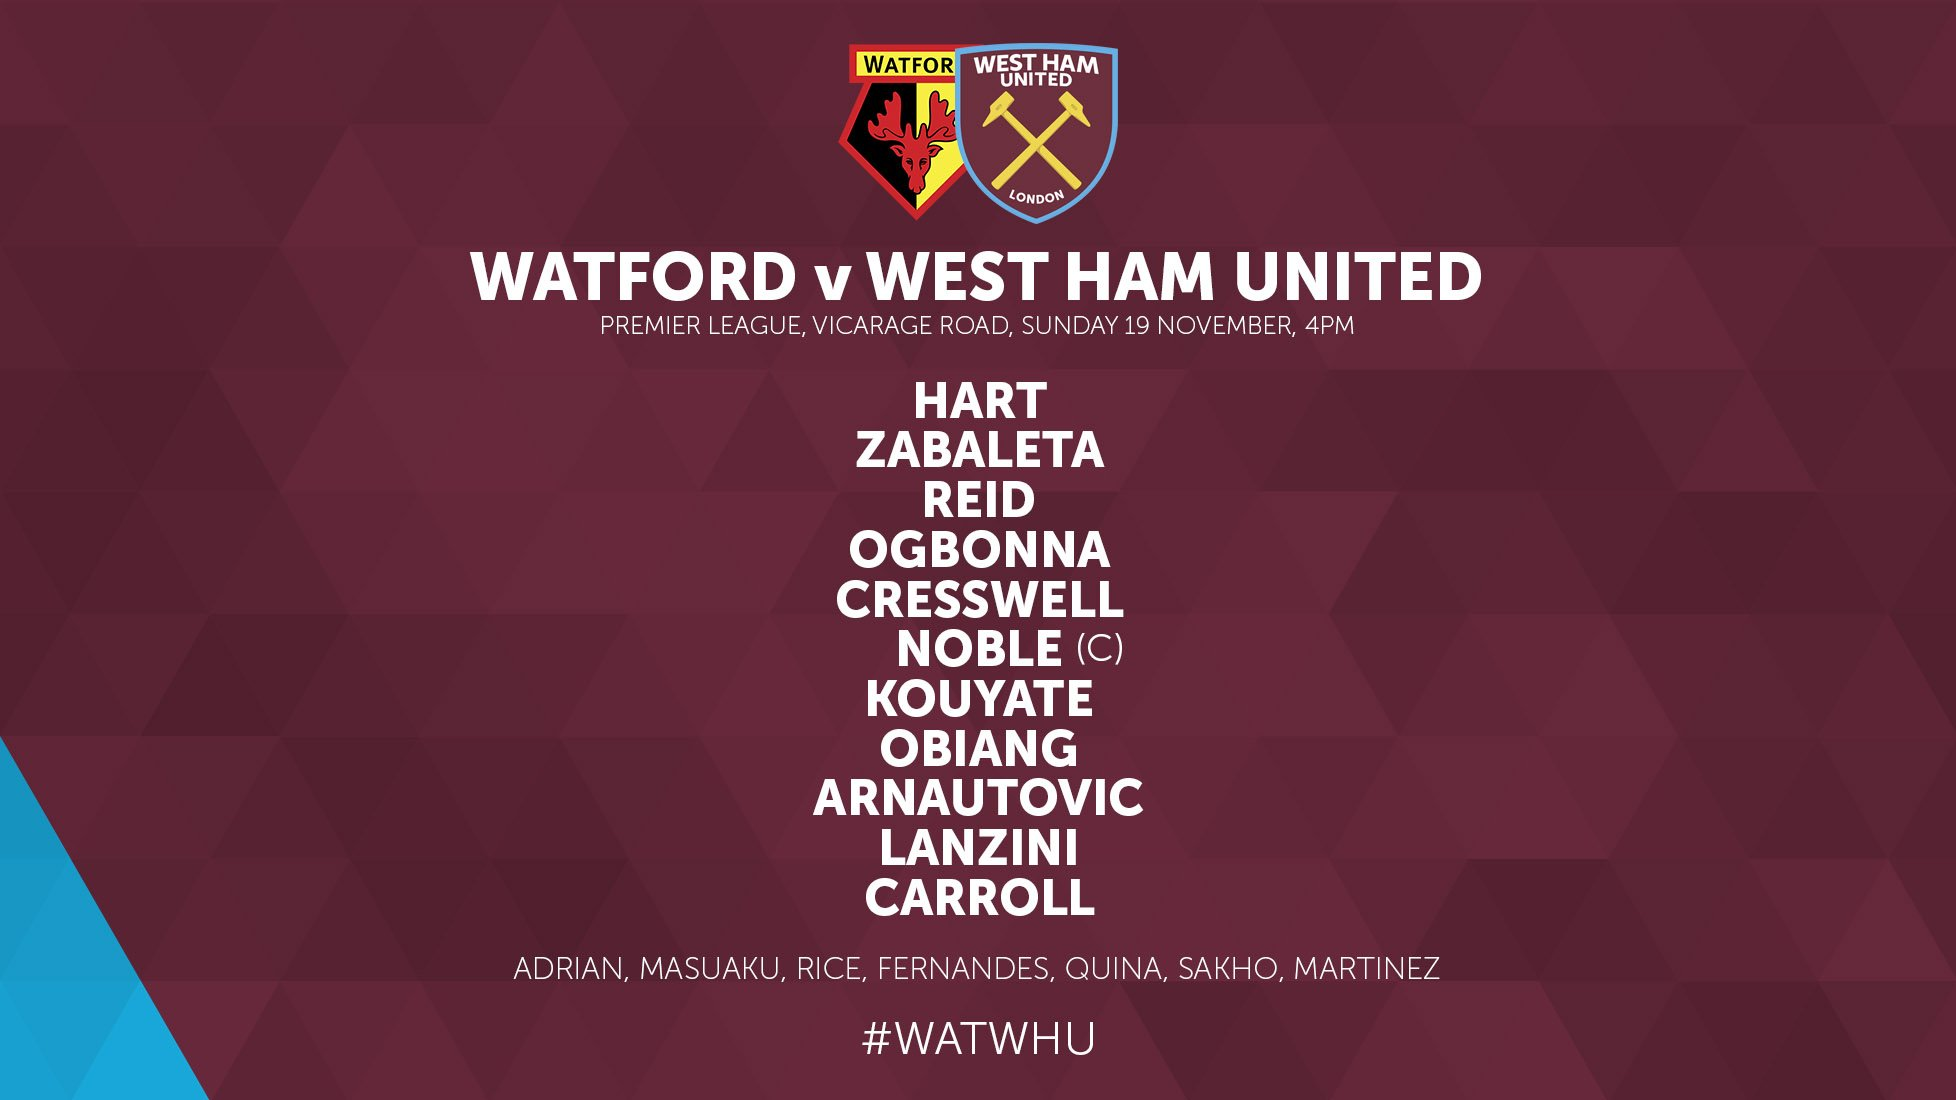 RT @WestHamUtd: Our starting XI for David Moyes' first game...  #WATWHU #COYI https://t.co/MejW1gDoL1